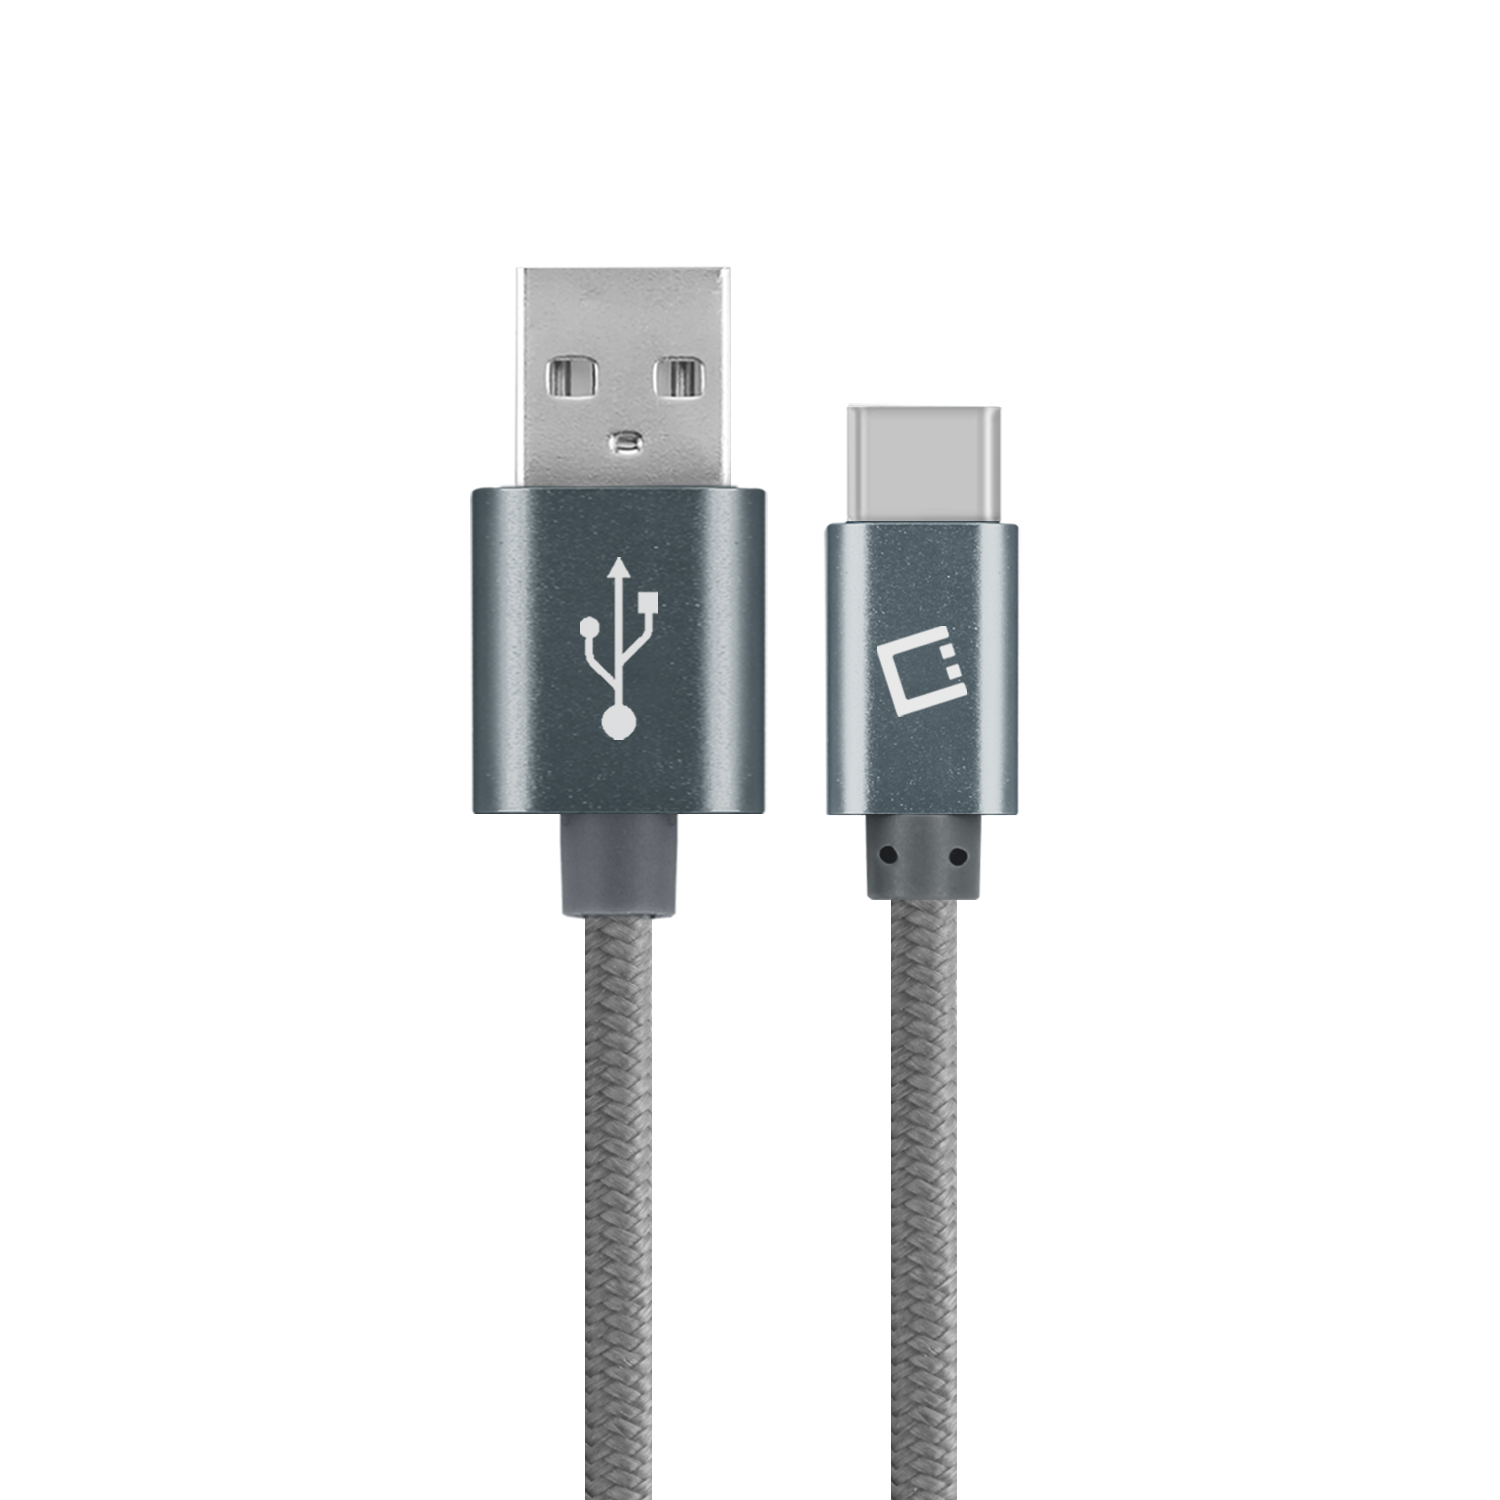 Samsung Galaxy A11 USB Type-C To Type-A Braided Data Power Cable Grey 10ft Braided